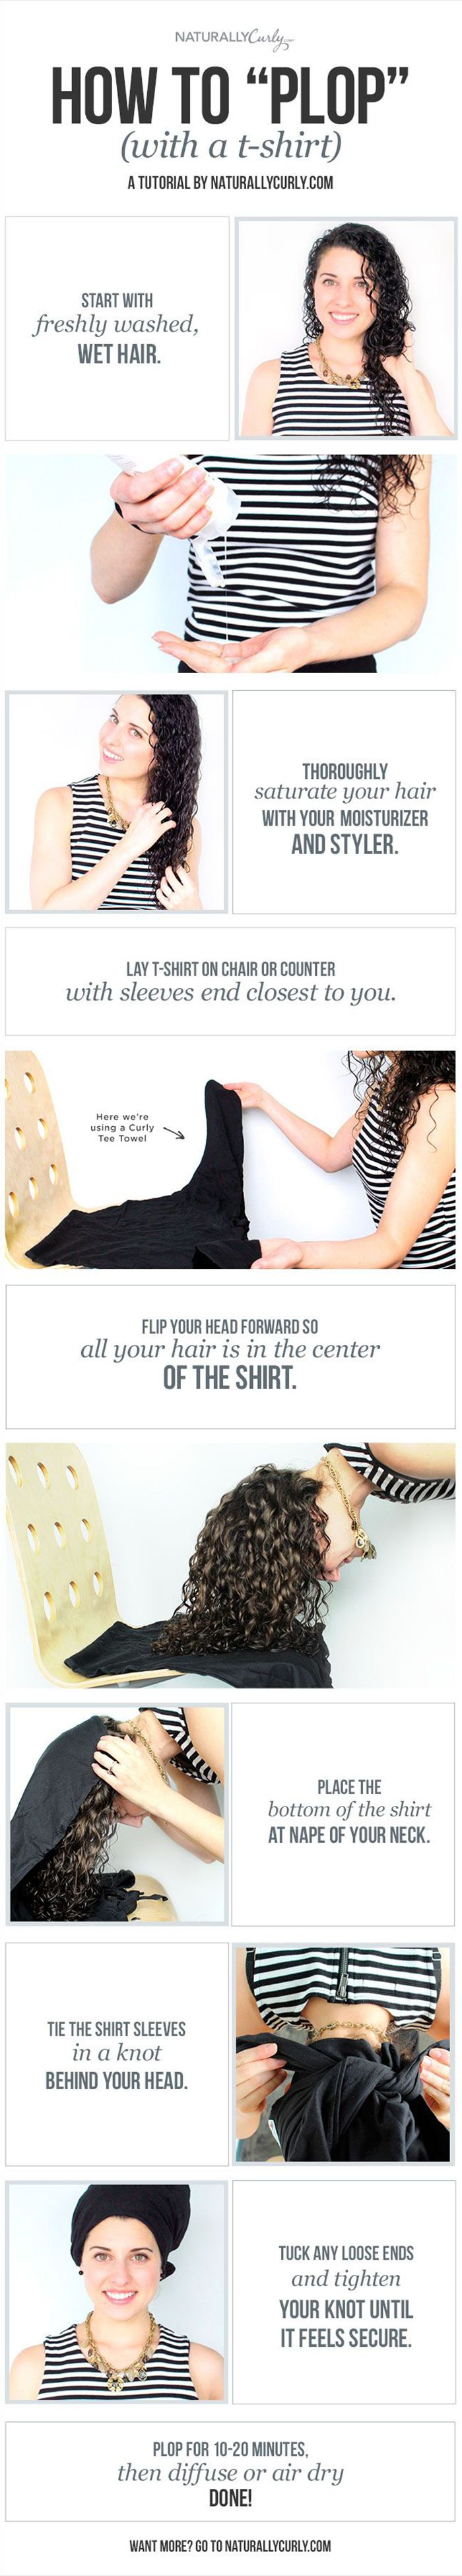 How To Plop Curly Hair A Curly Girl S Guide Curly Hair Styles Naturally Hair Plopping Curly Hair Styles